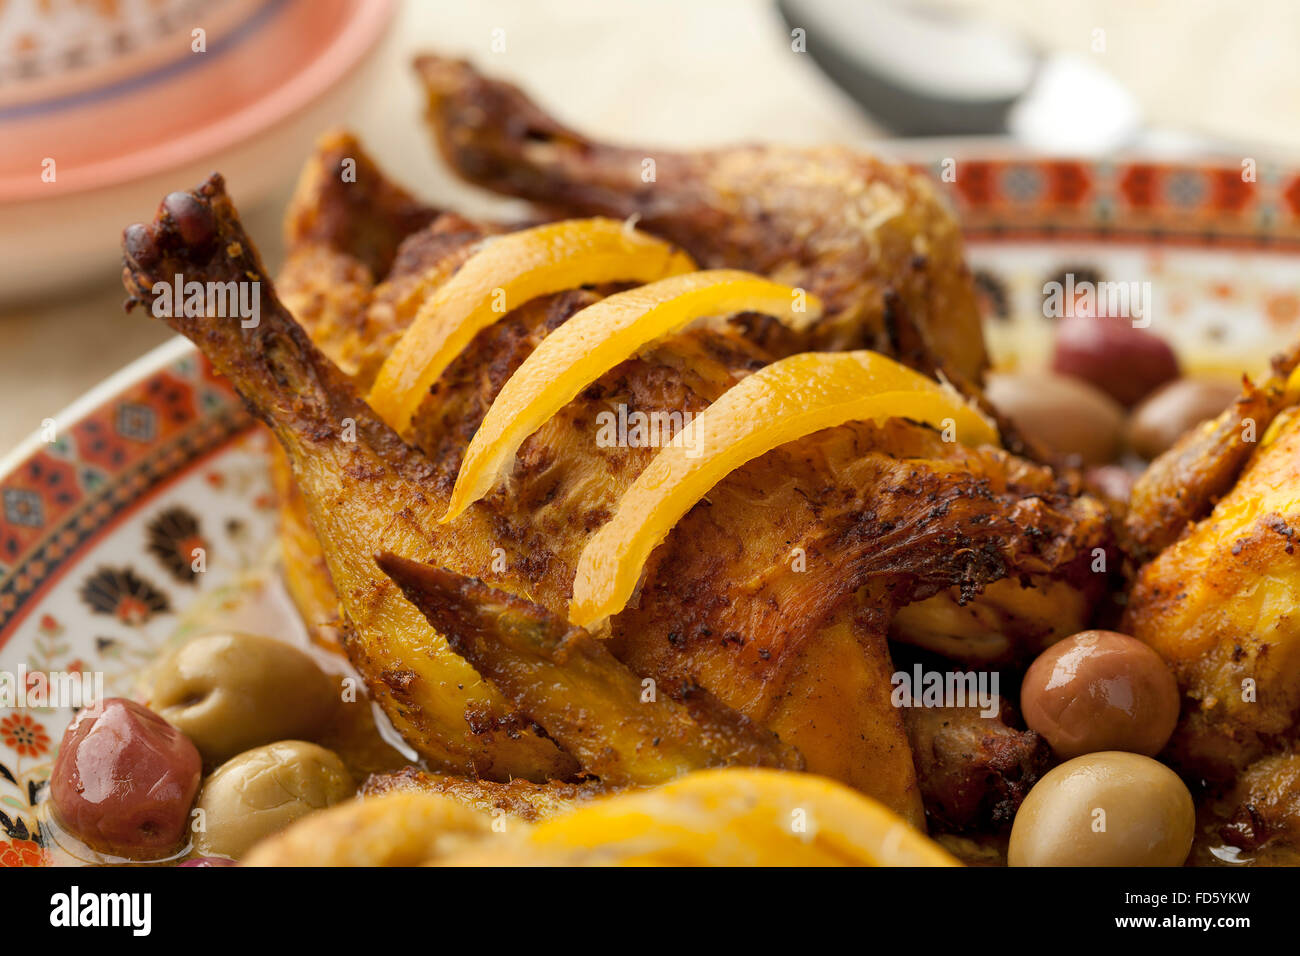 Moroccan chicken dish with preserved lemon and olives - Stock Image